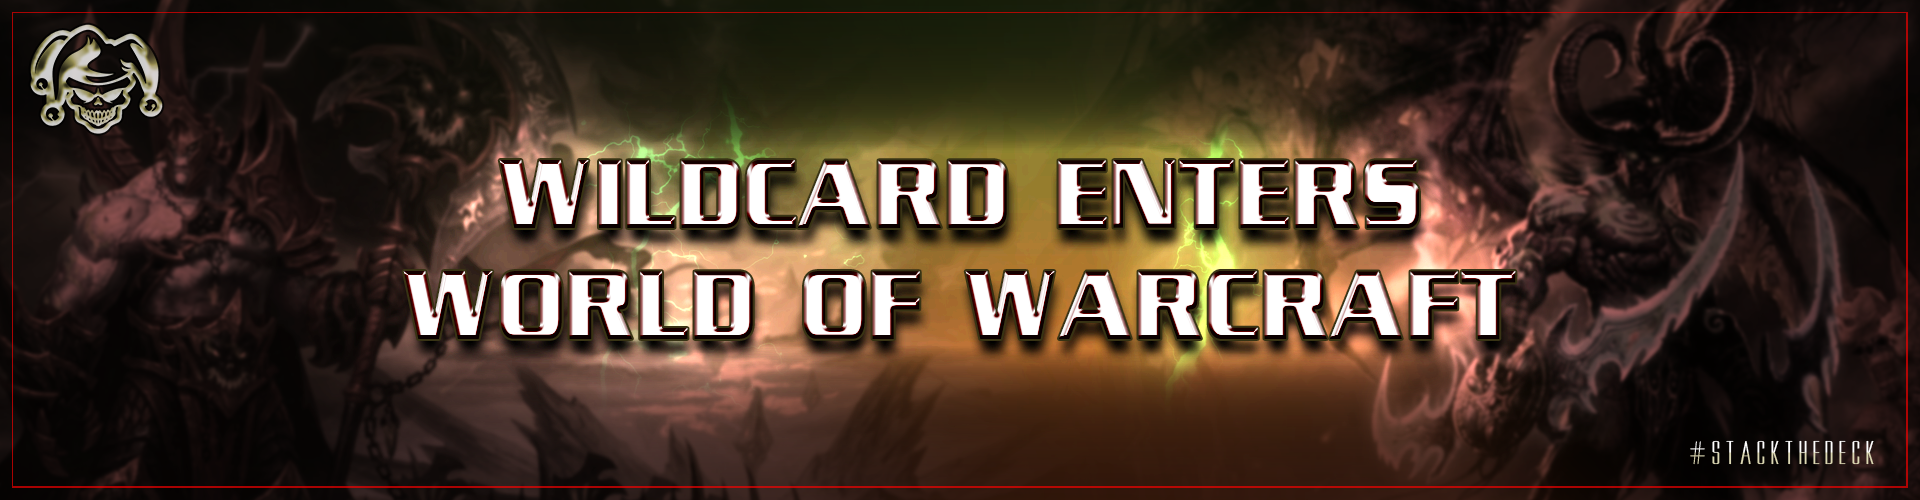 Wildcard Enters World of Warcraft!